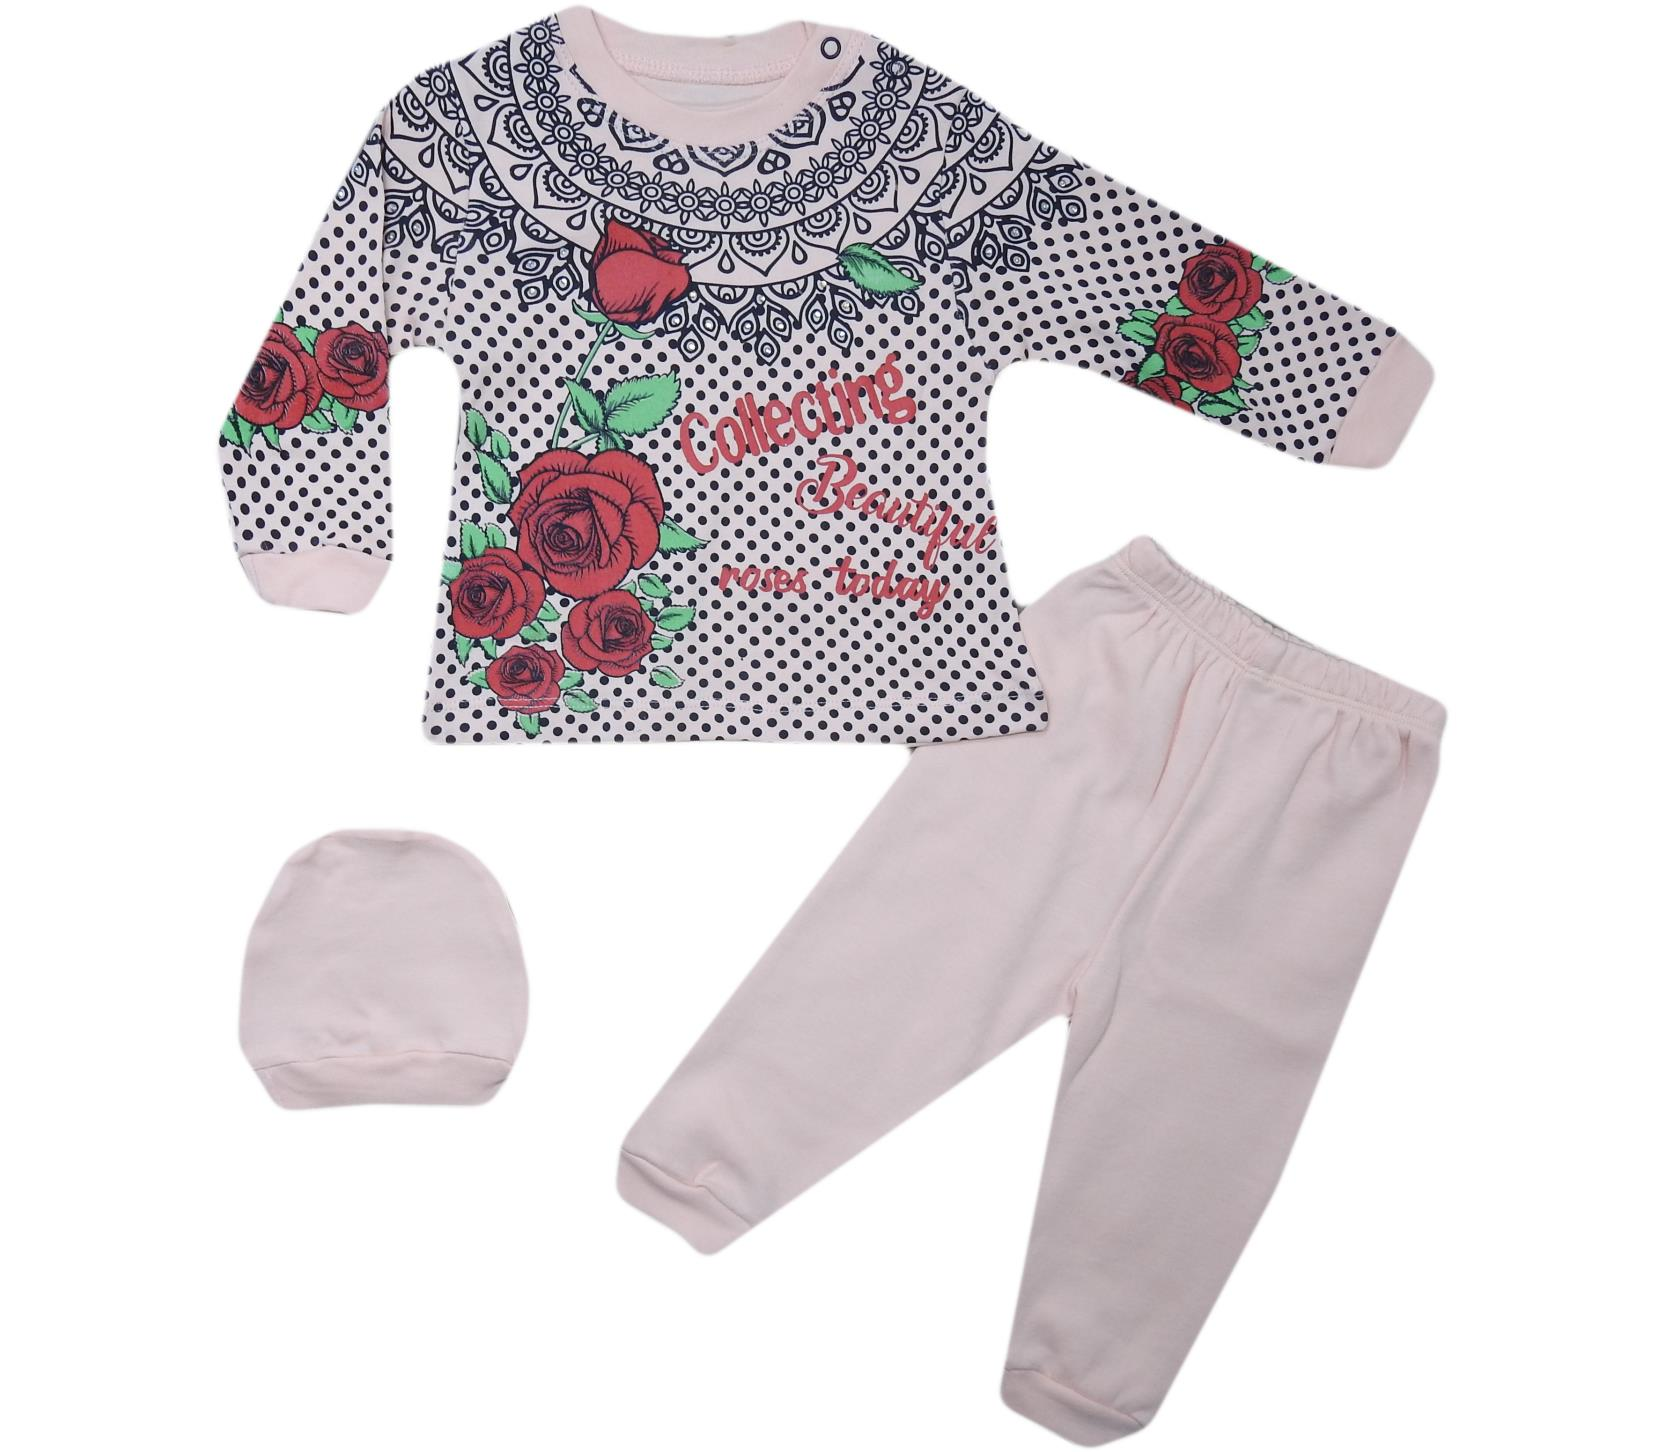 313 Wholesale Quality and Cheap Set for Girl Babies 9-12-18 Month